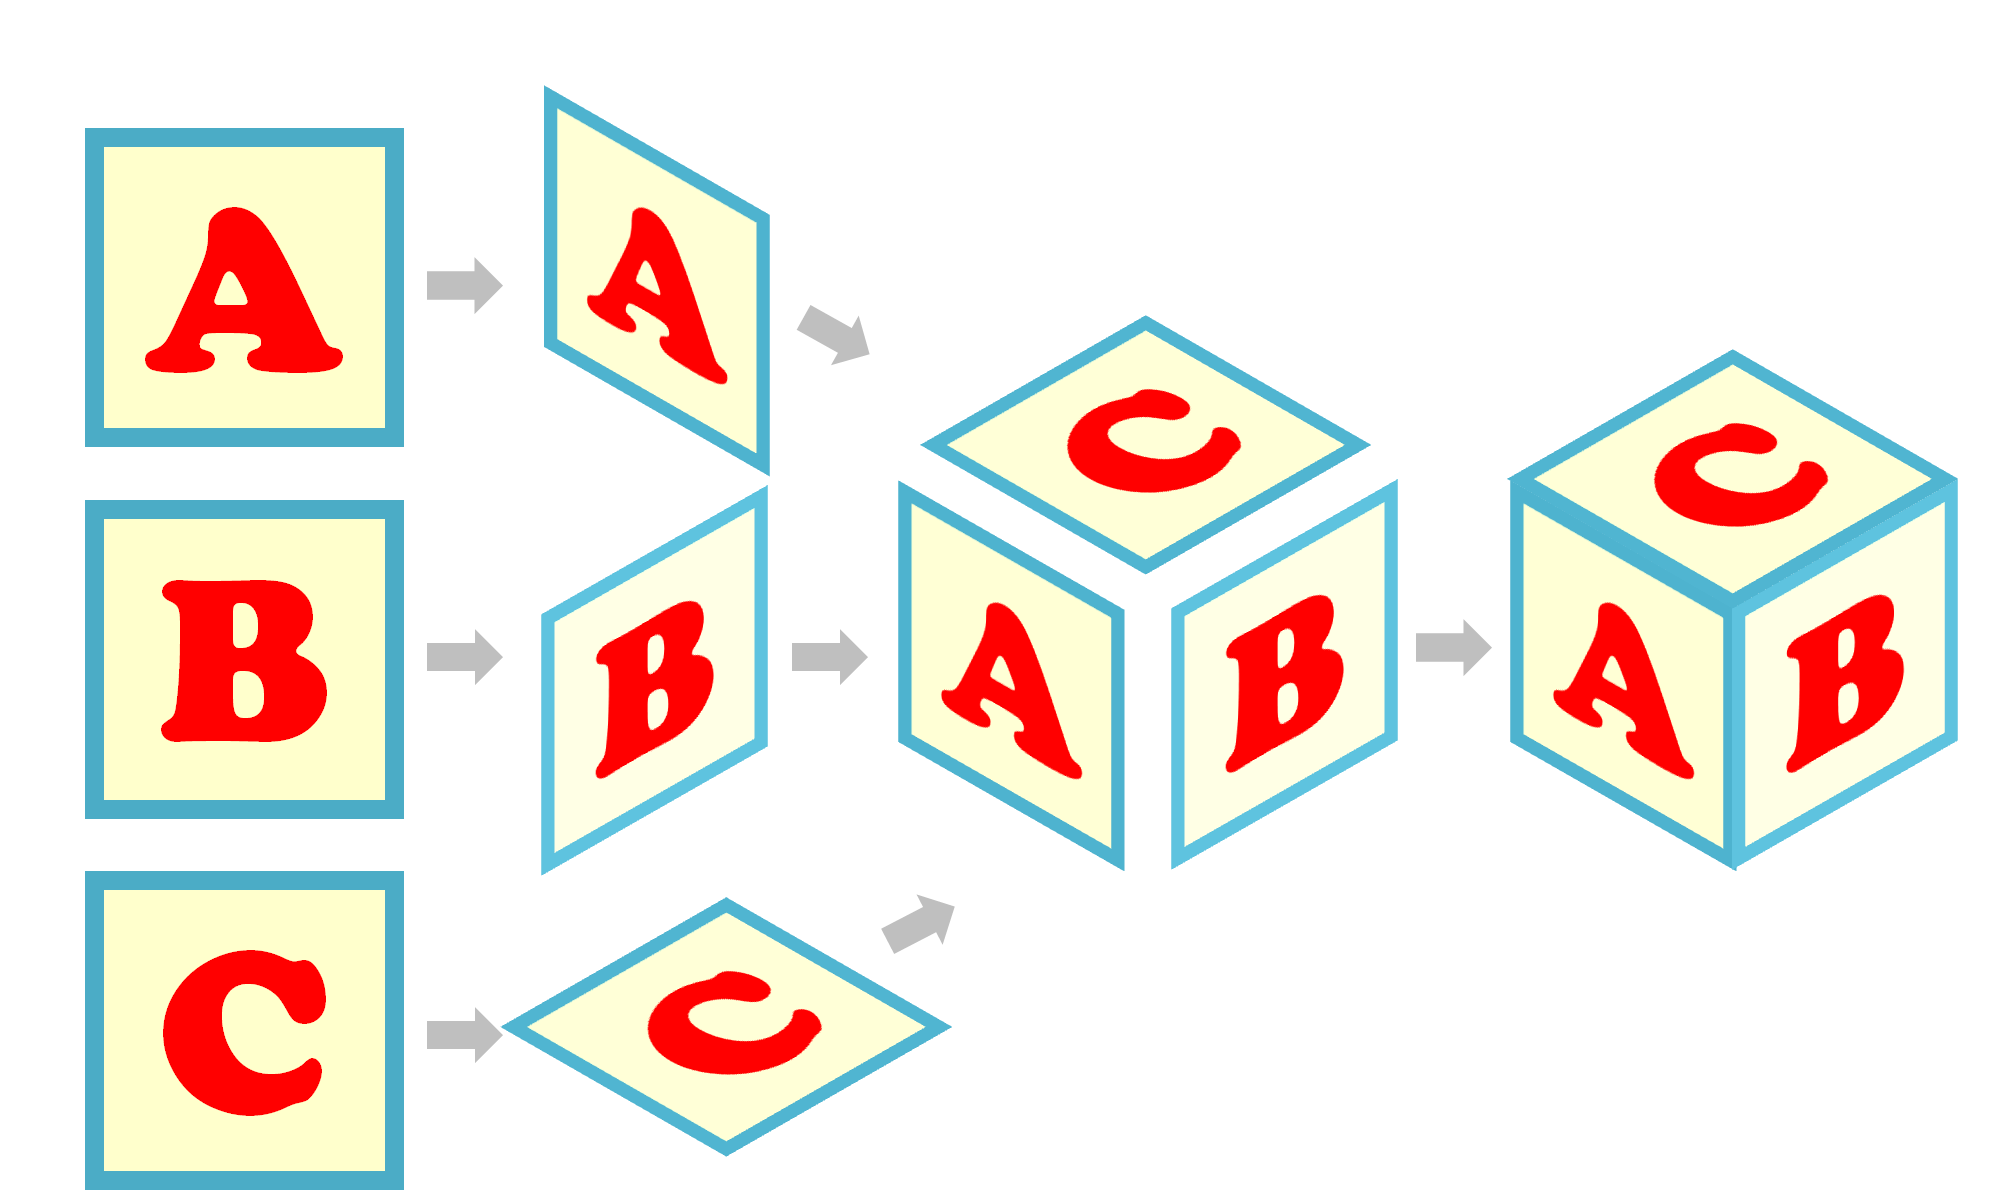 Drawing in powerpoint more alphabet blocks powerpointy persp 1 spiritdancerdesigns Image collections